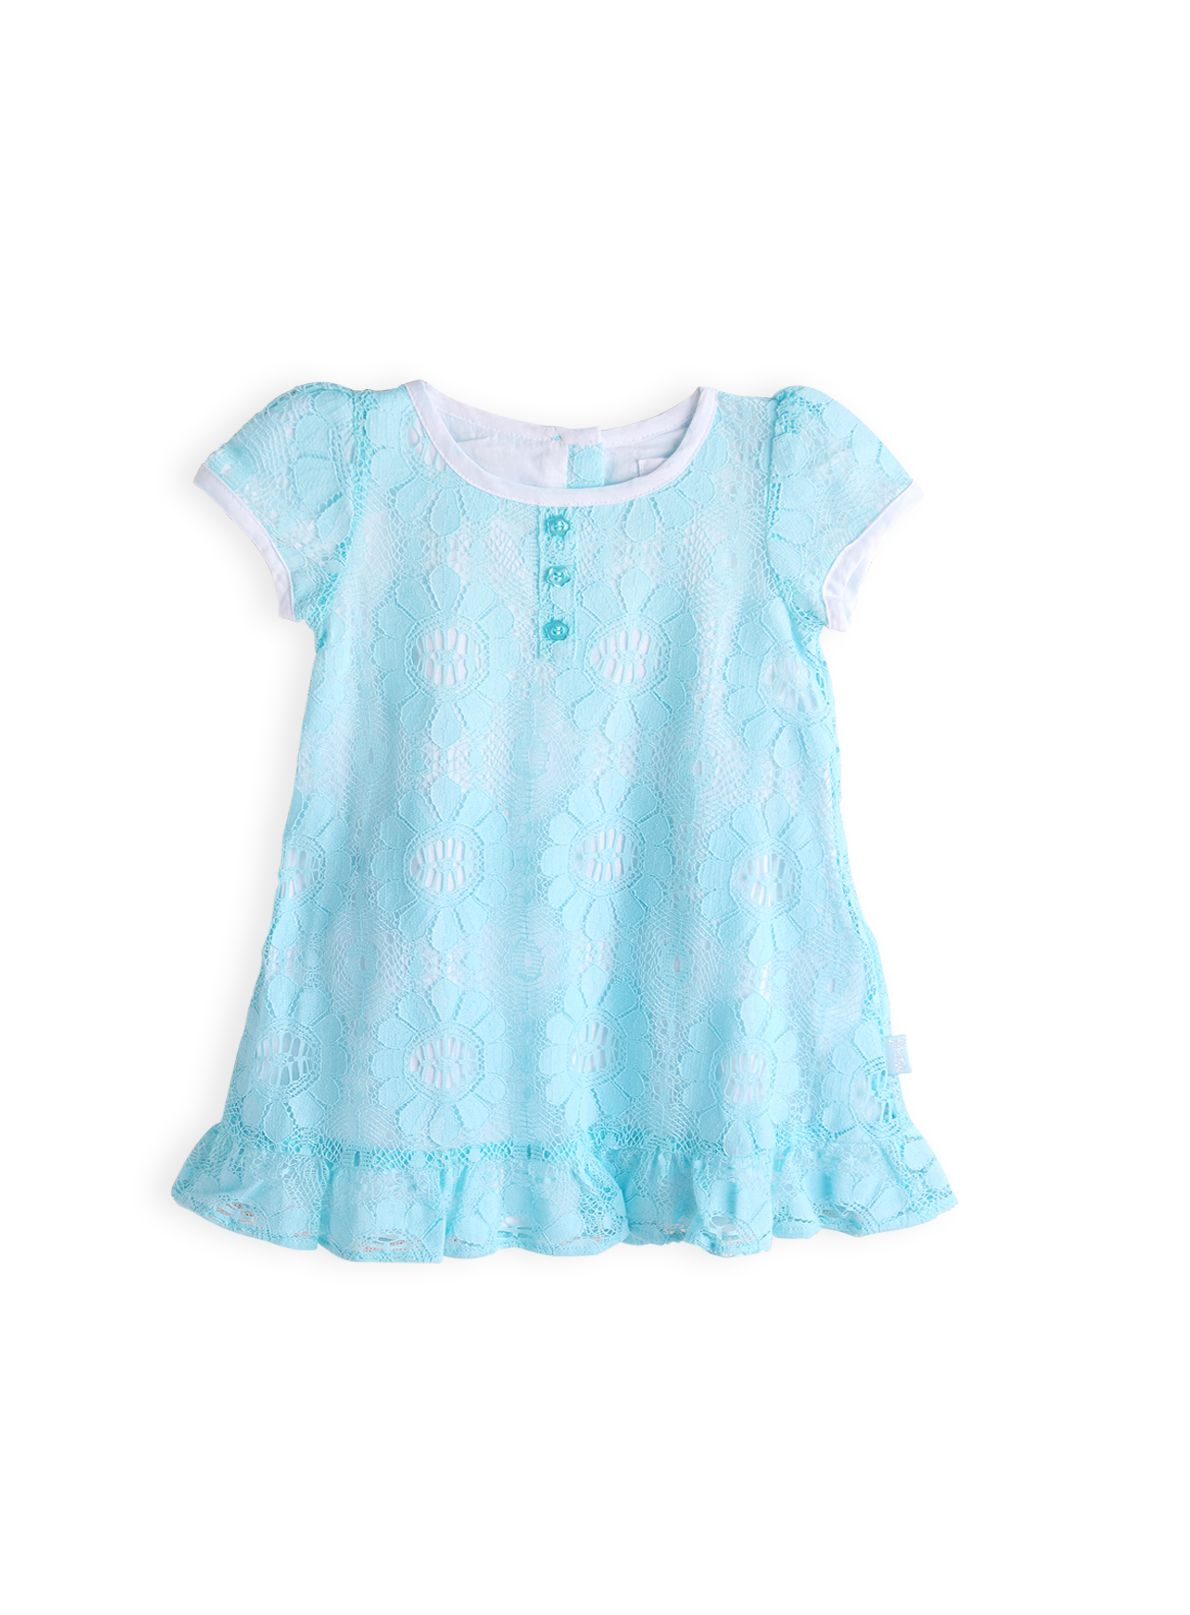 Girls cotton lace dress